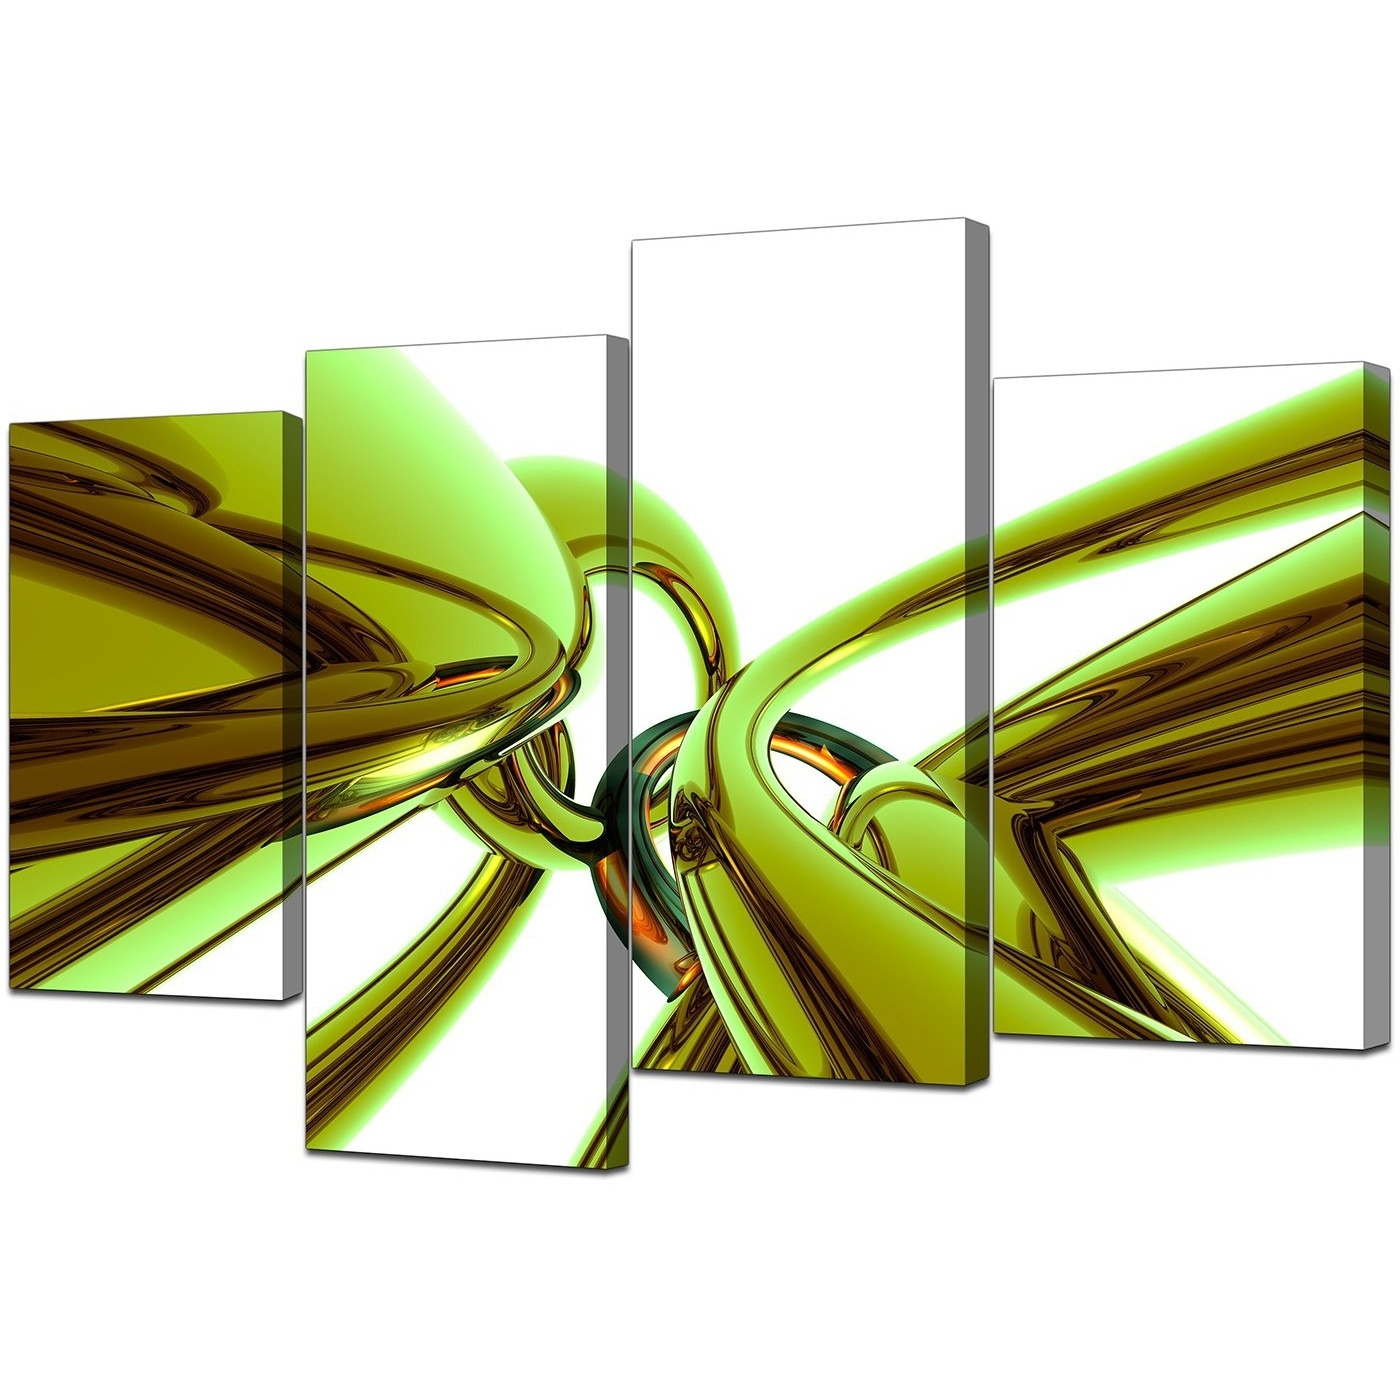 Abstract Canvas Wall Art In Green For Your Living Room – Set Of 4 For Best And Newest Green Wall Art (View 5 of 20)